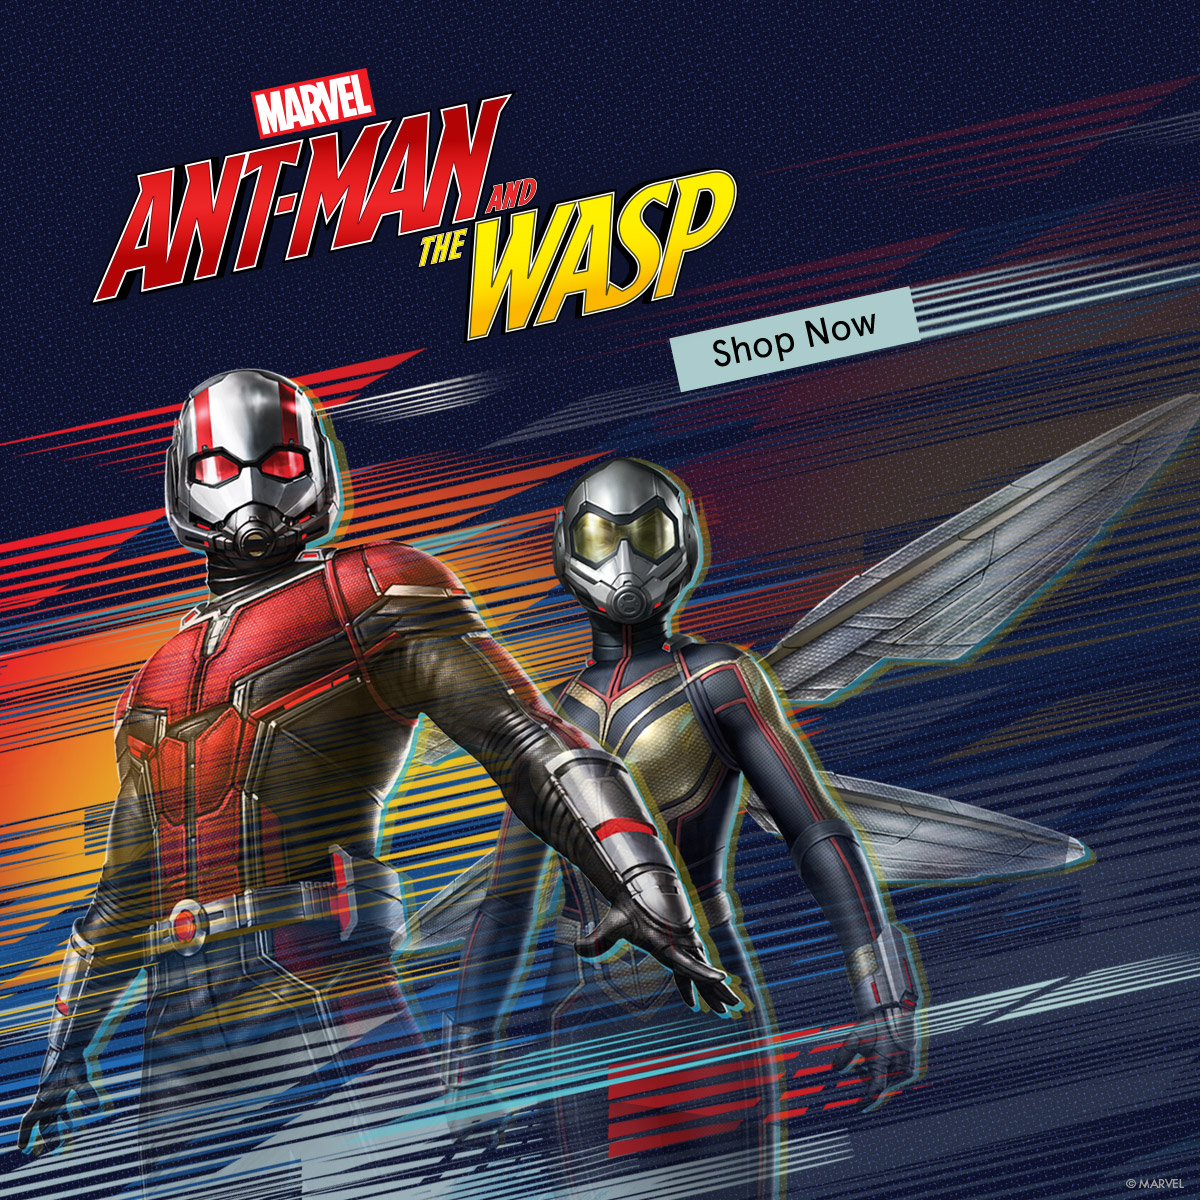 Marvel. Ant-Man and the Wasp. Shop Now.